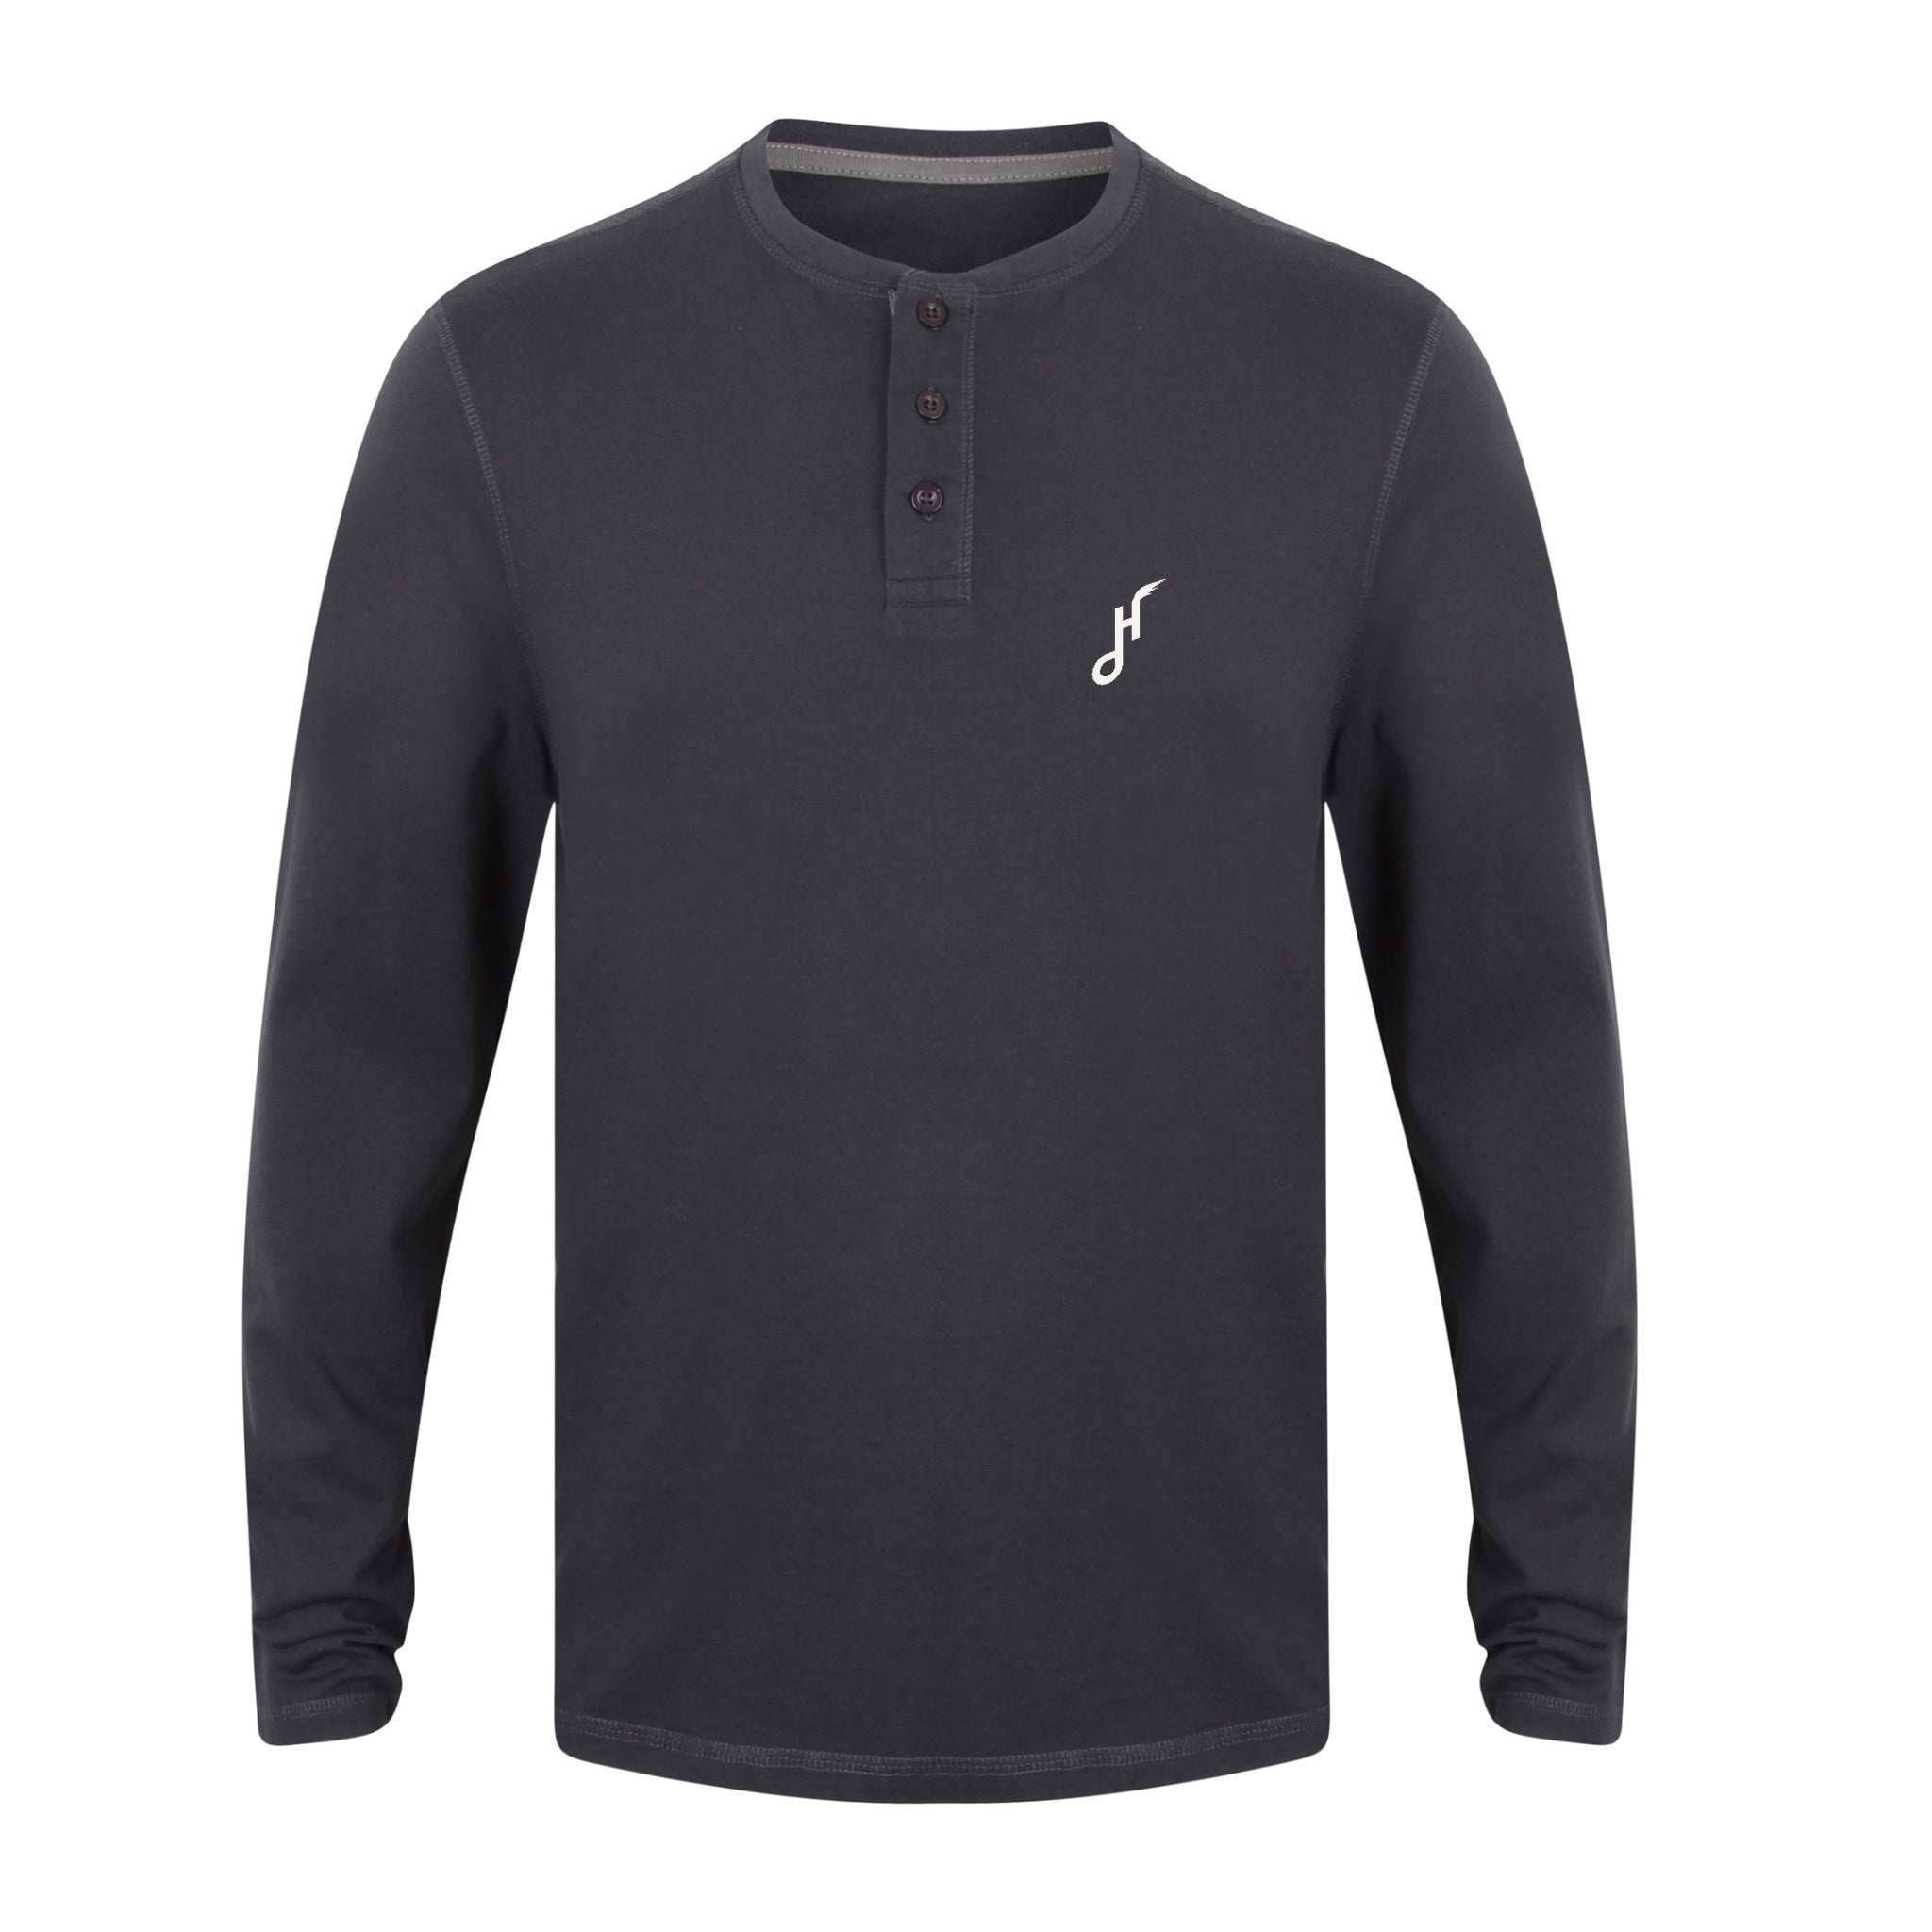 Hoy Harley Long sleeved Henley Shirt - Navy